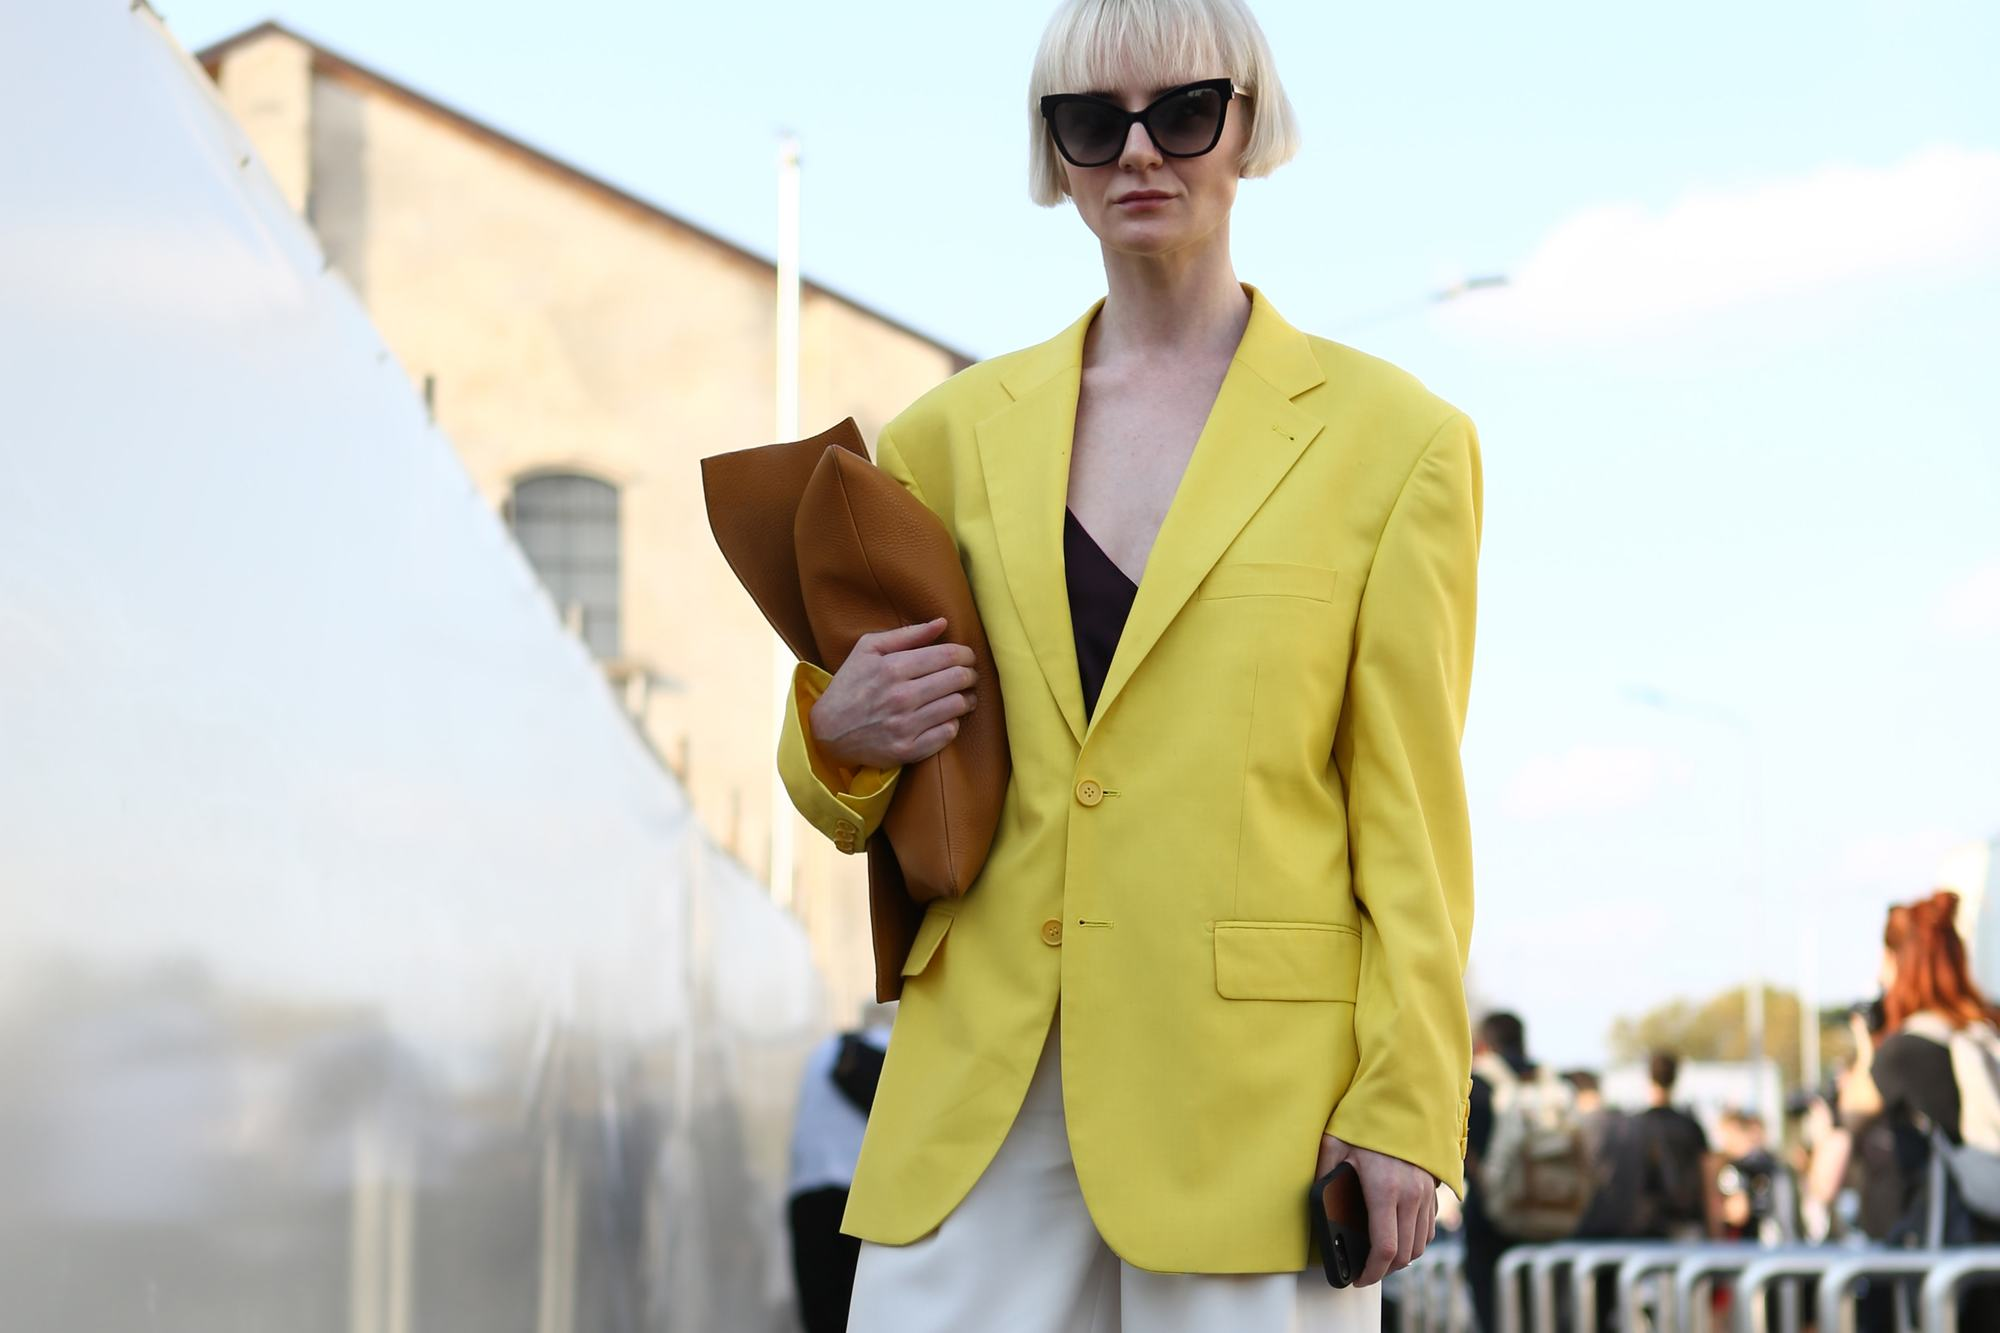 blonde street styler at milan fashion week ss18 in a yellow blazer with a short bob cut